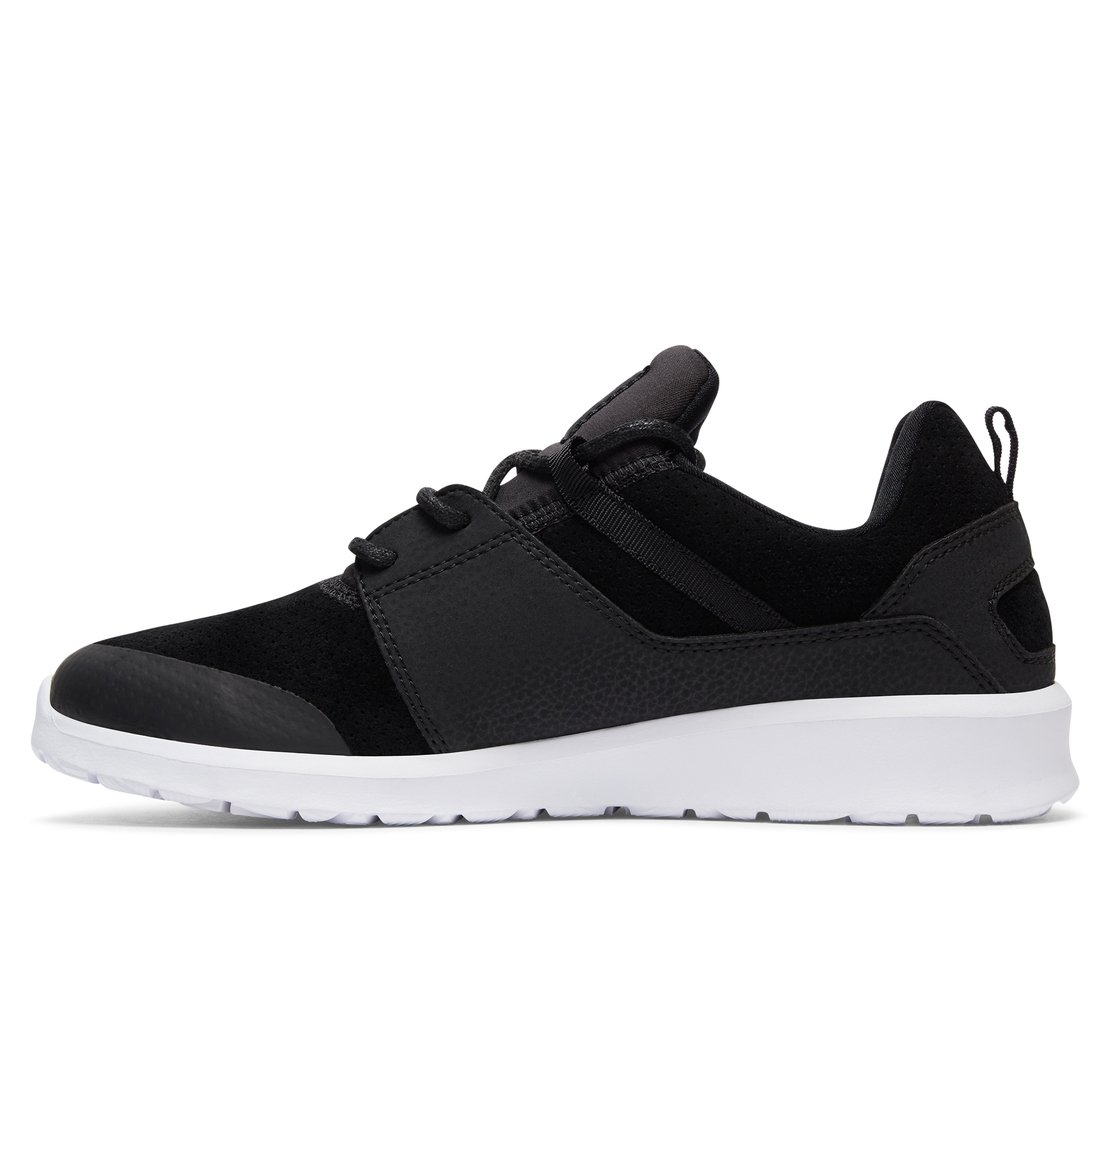 DC Shoes Men's Heathrow Sneakers Low Top Shoes Black White (BKW) 10